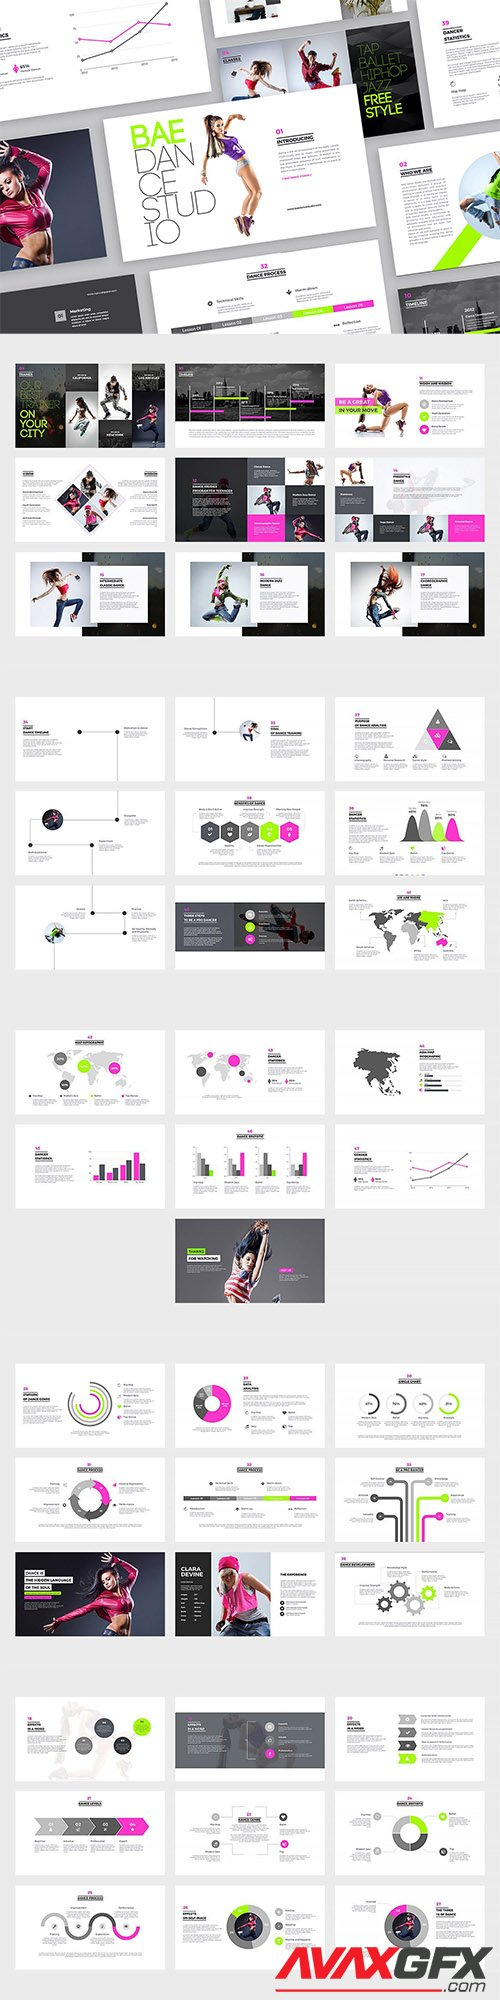 Bae Dance PowerPoint and Keynote Templates